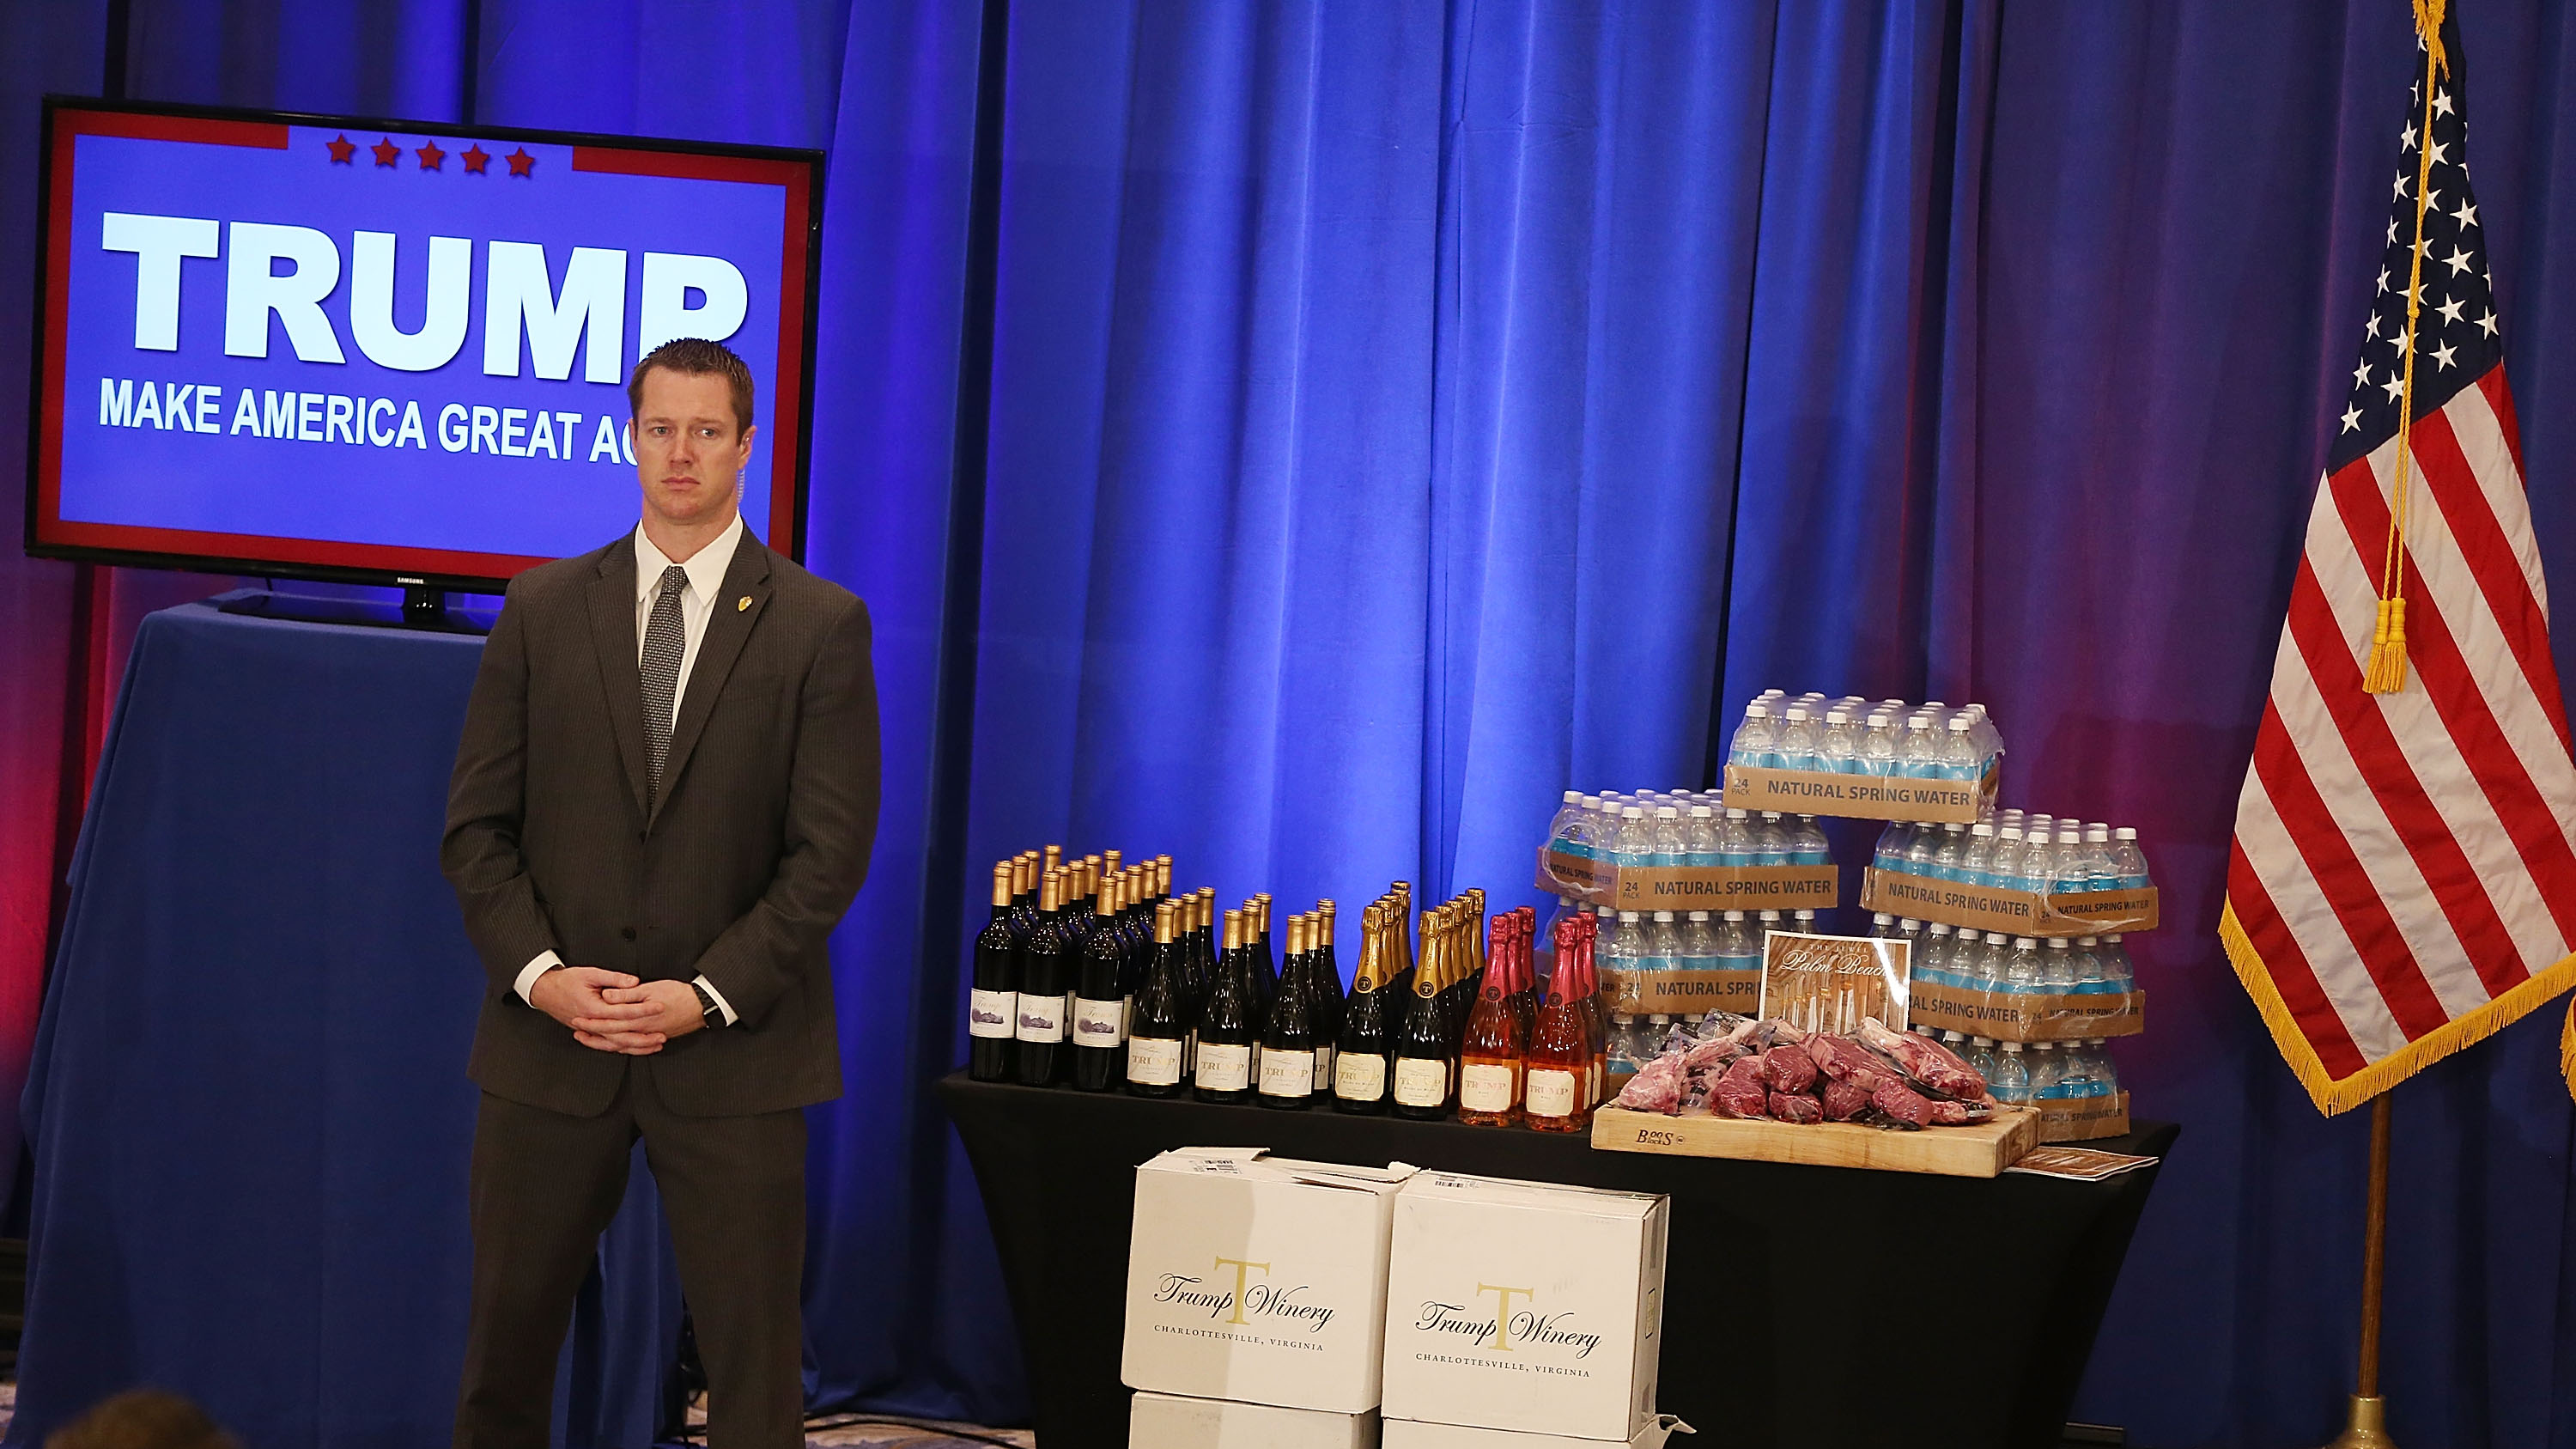 Trump Doesn't Own Most Of The Products He Pitched Last Night